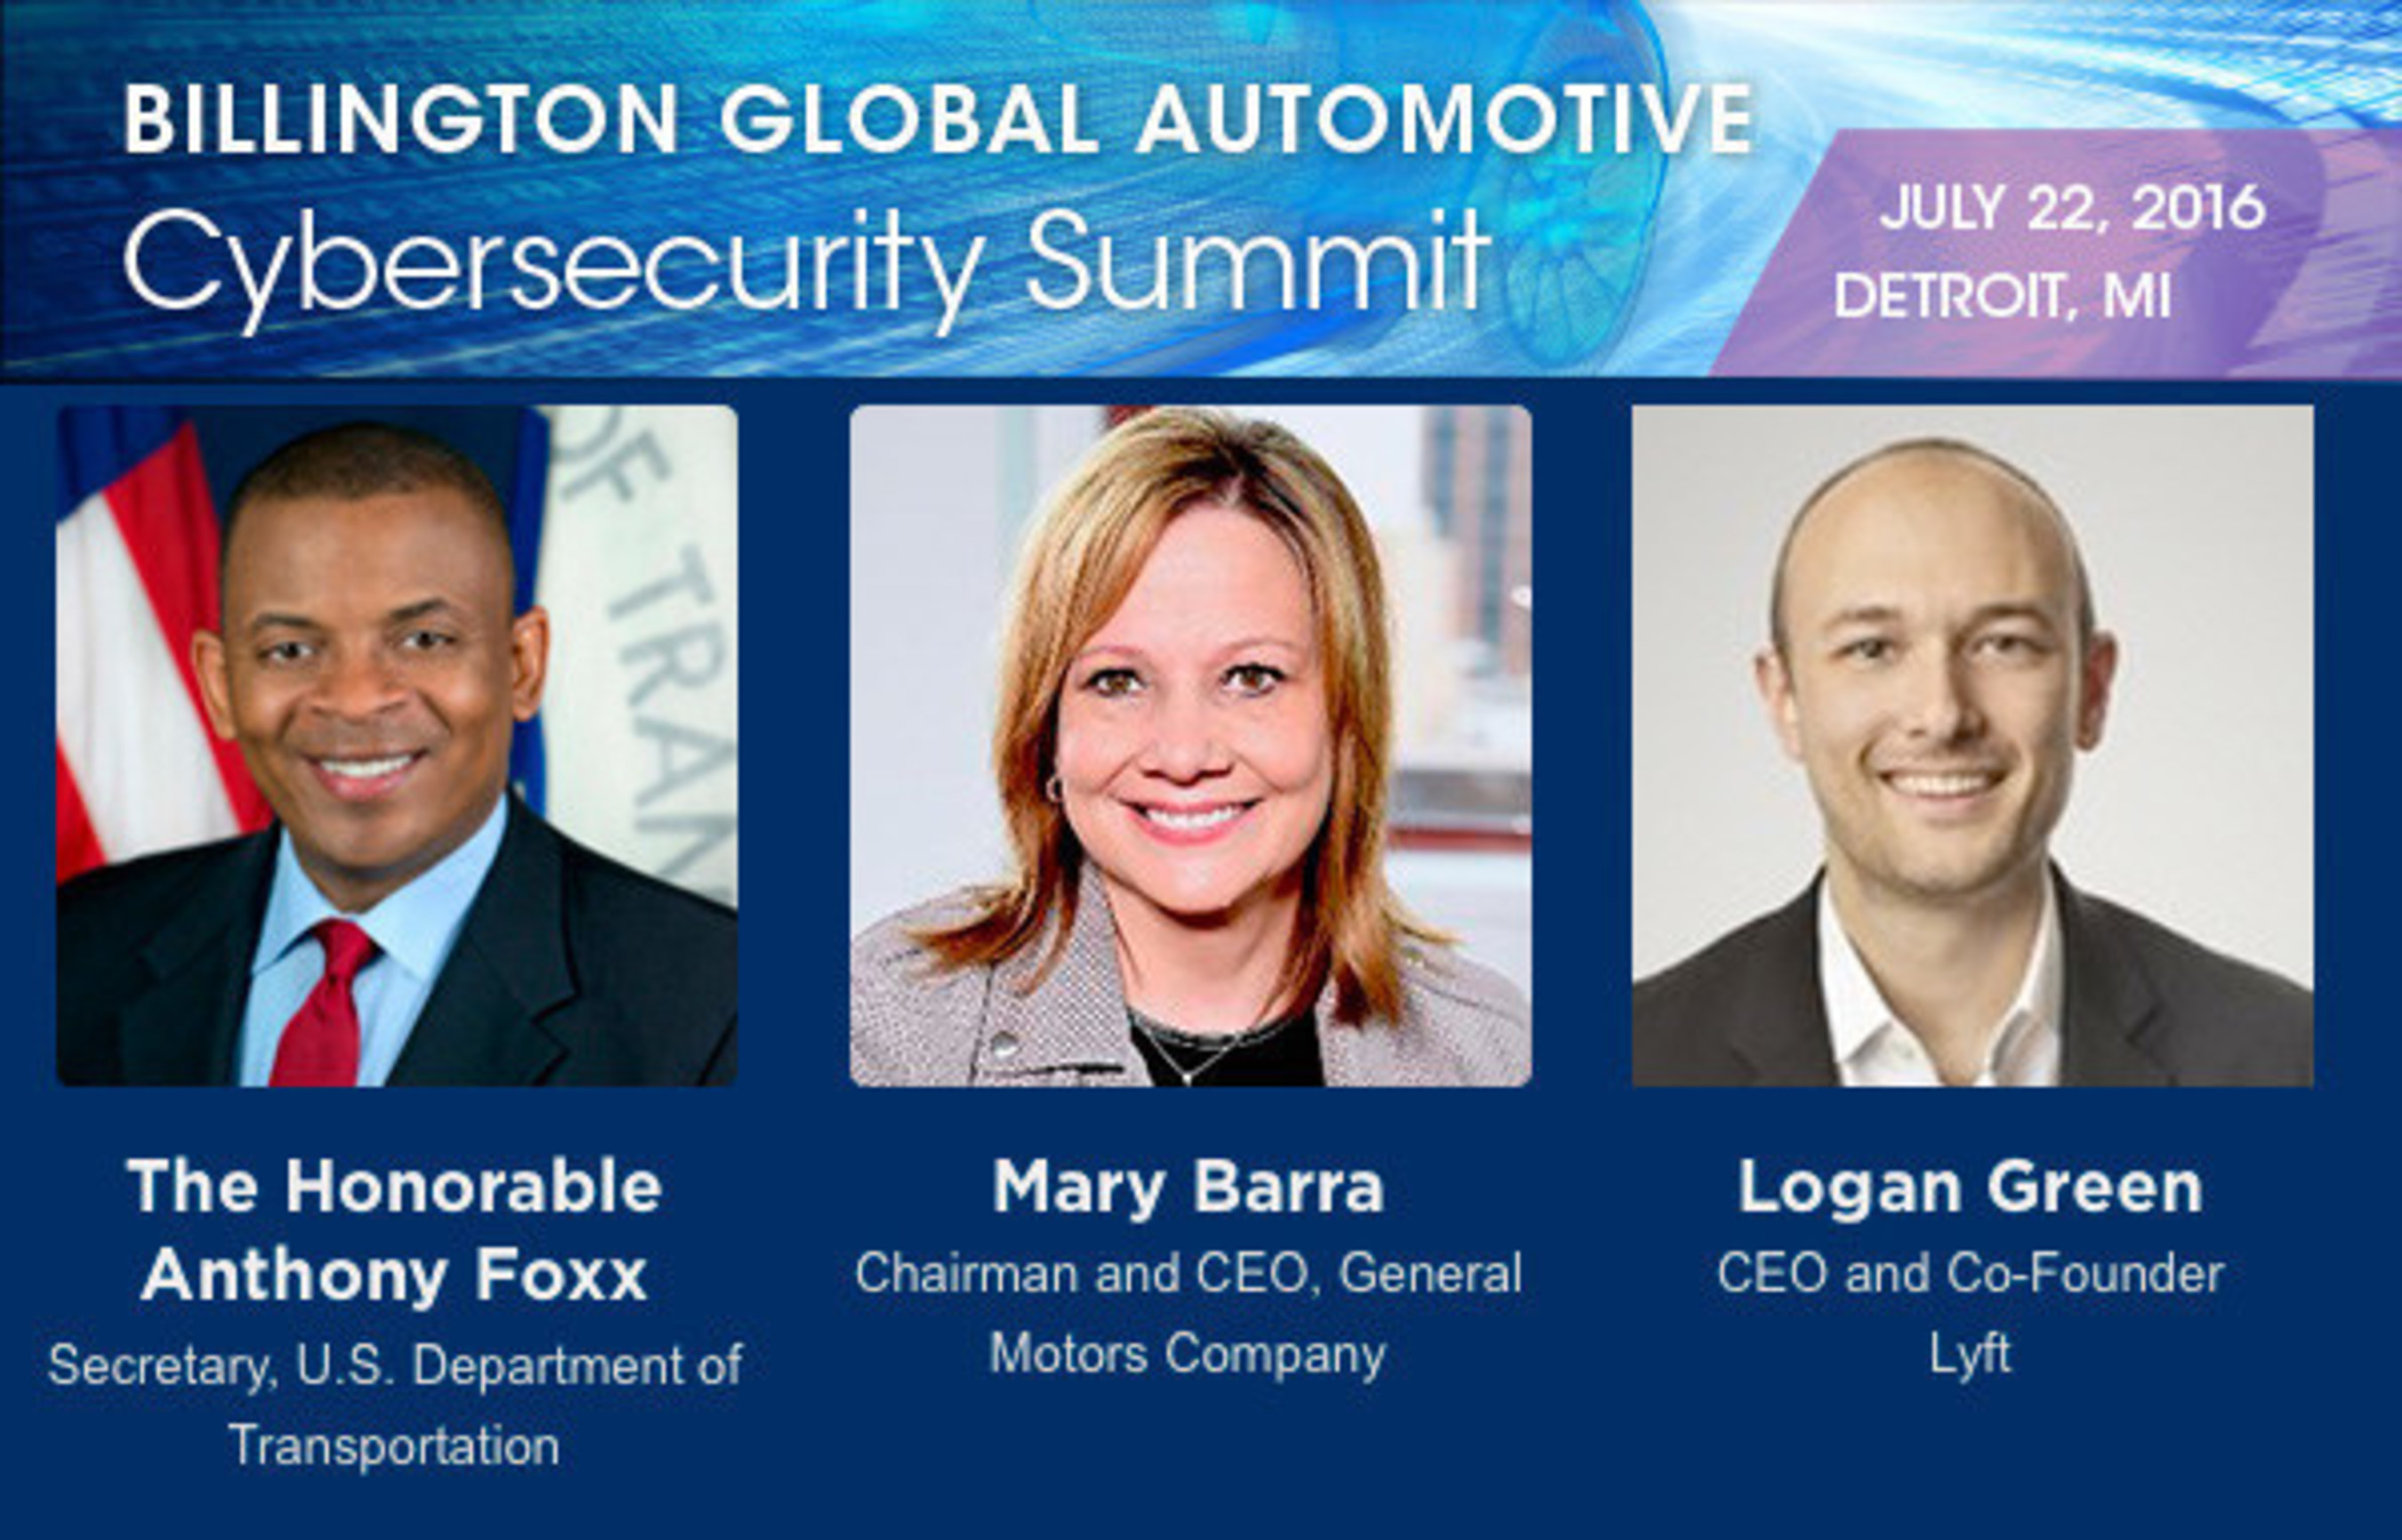 Billington Automotive Cybersecurity Summit to Focus on Cyber Best Practices for Connected and Autonomous Vehicles